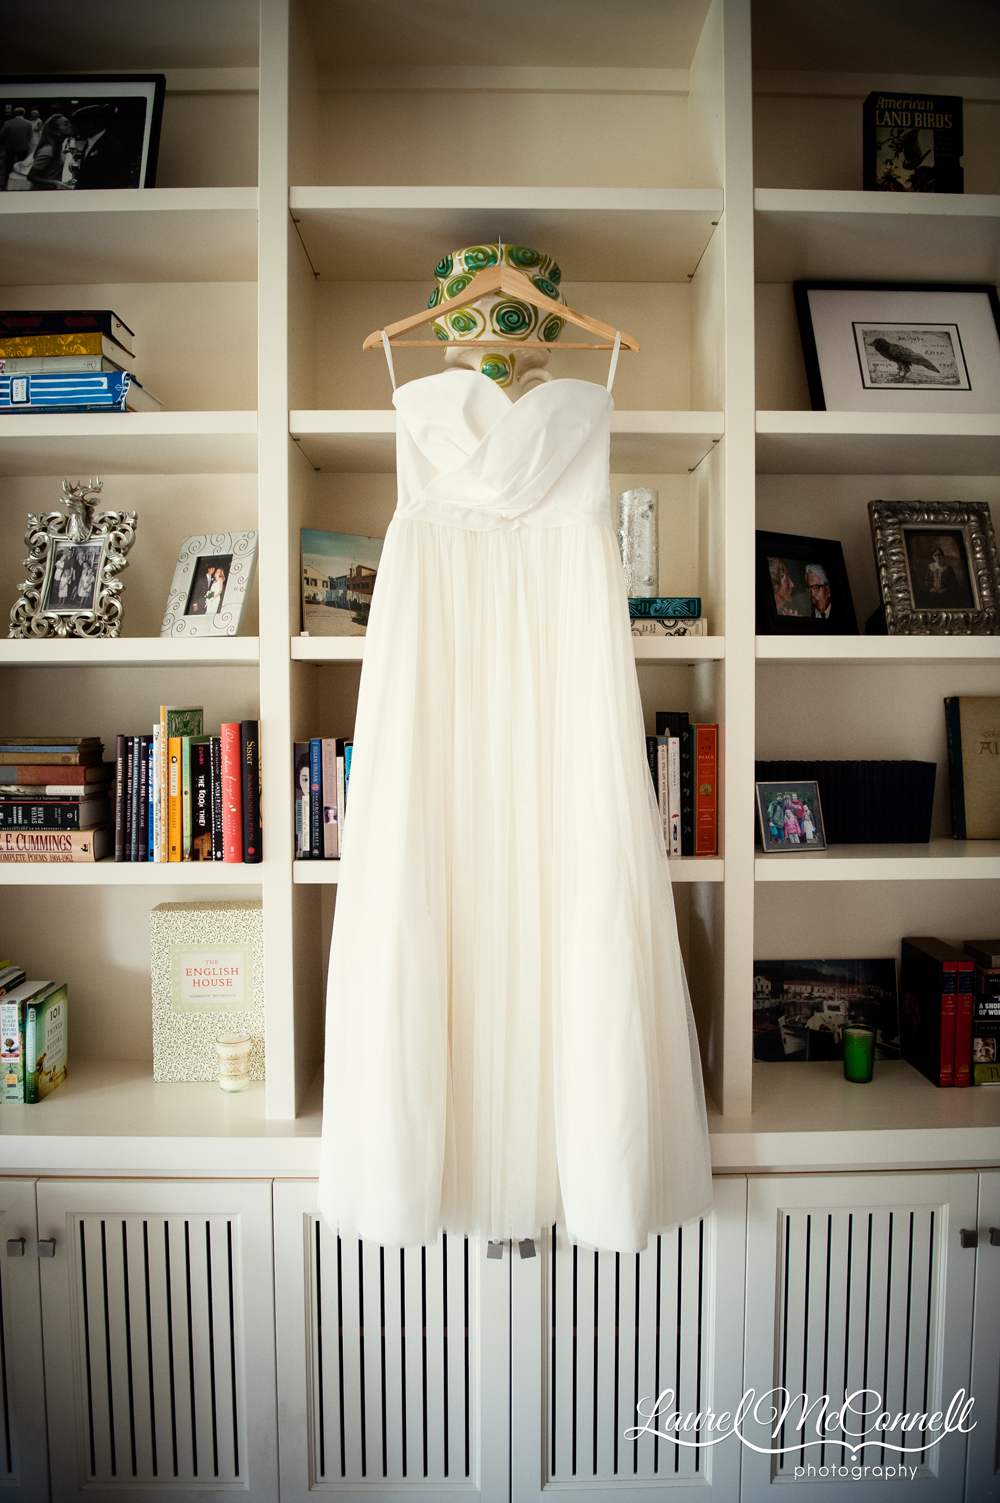 Elizabeth Dye gown from the Dress Theory.